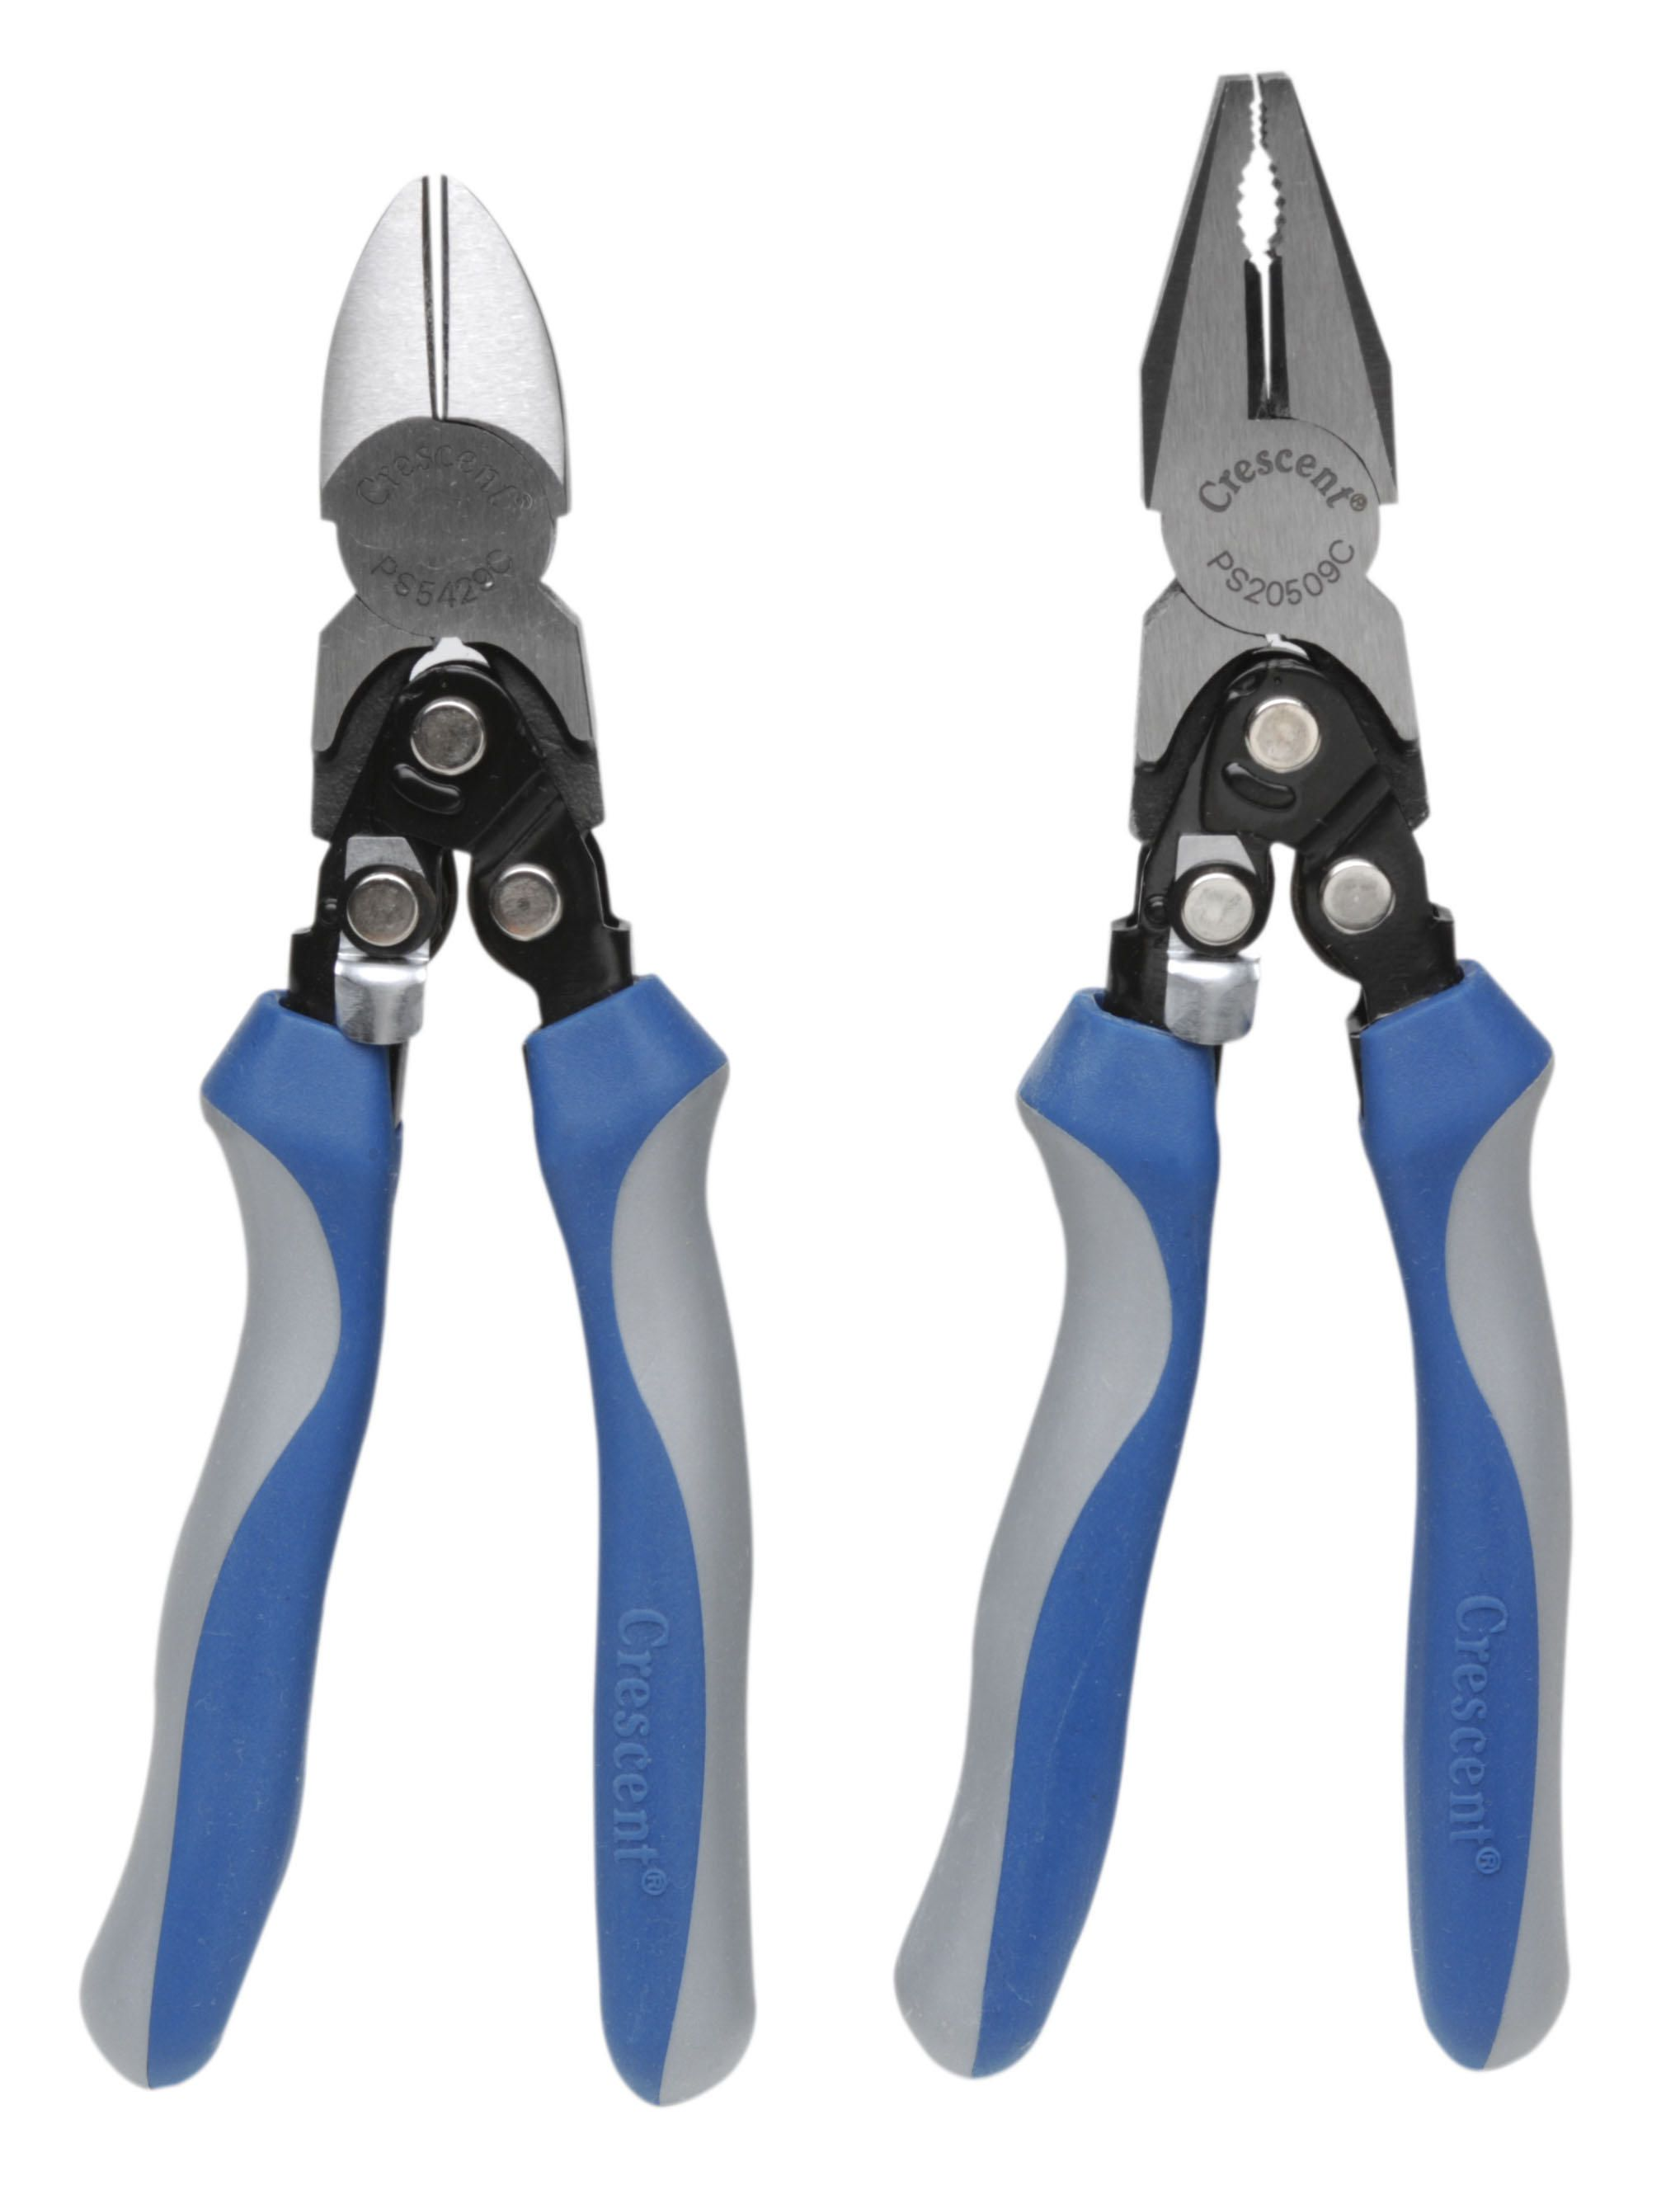 Crescent PSCA2SET Plier 2pc CA Set, Pro Series